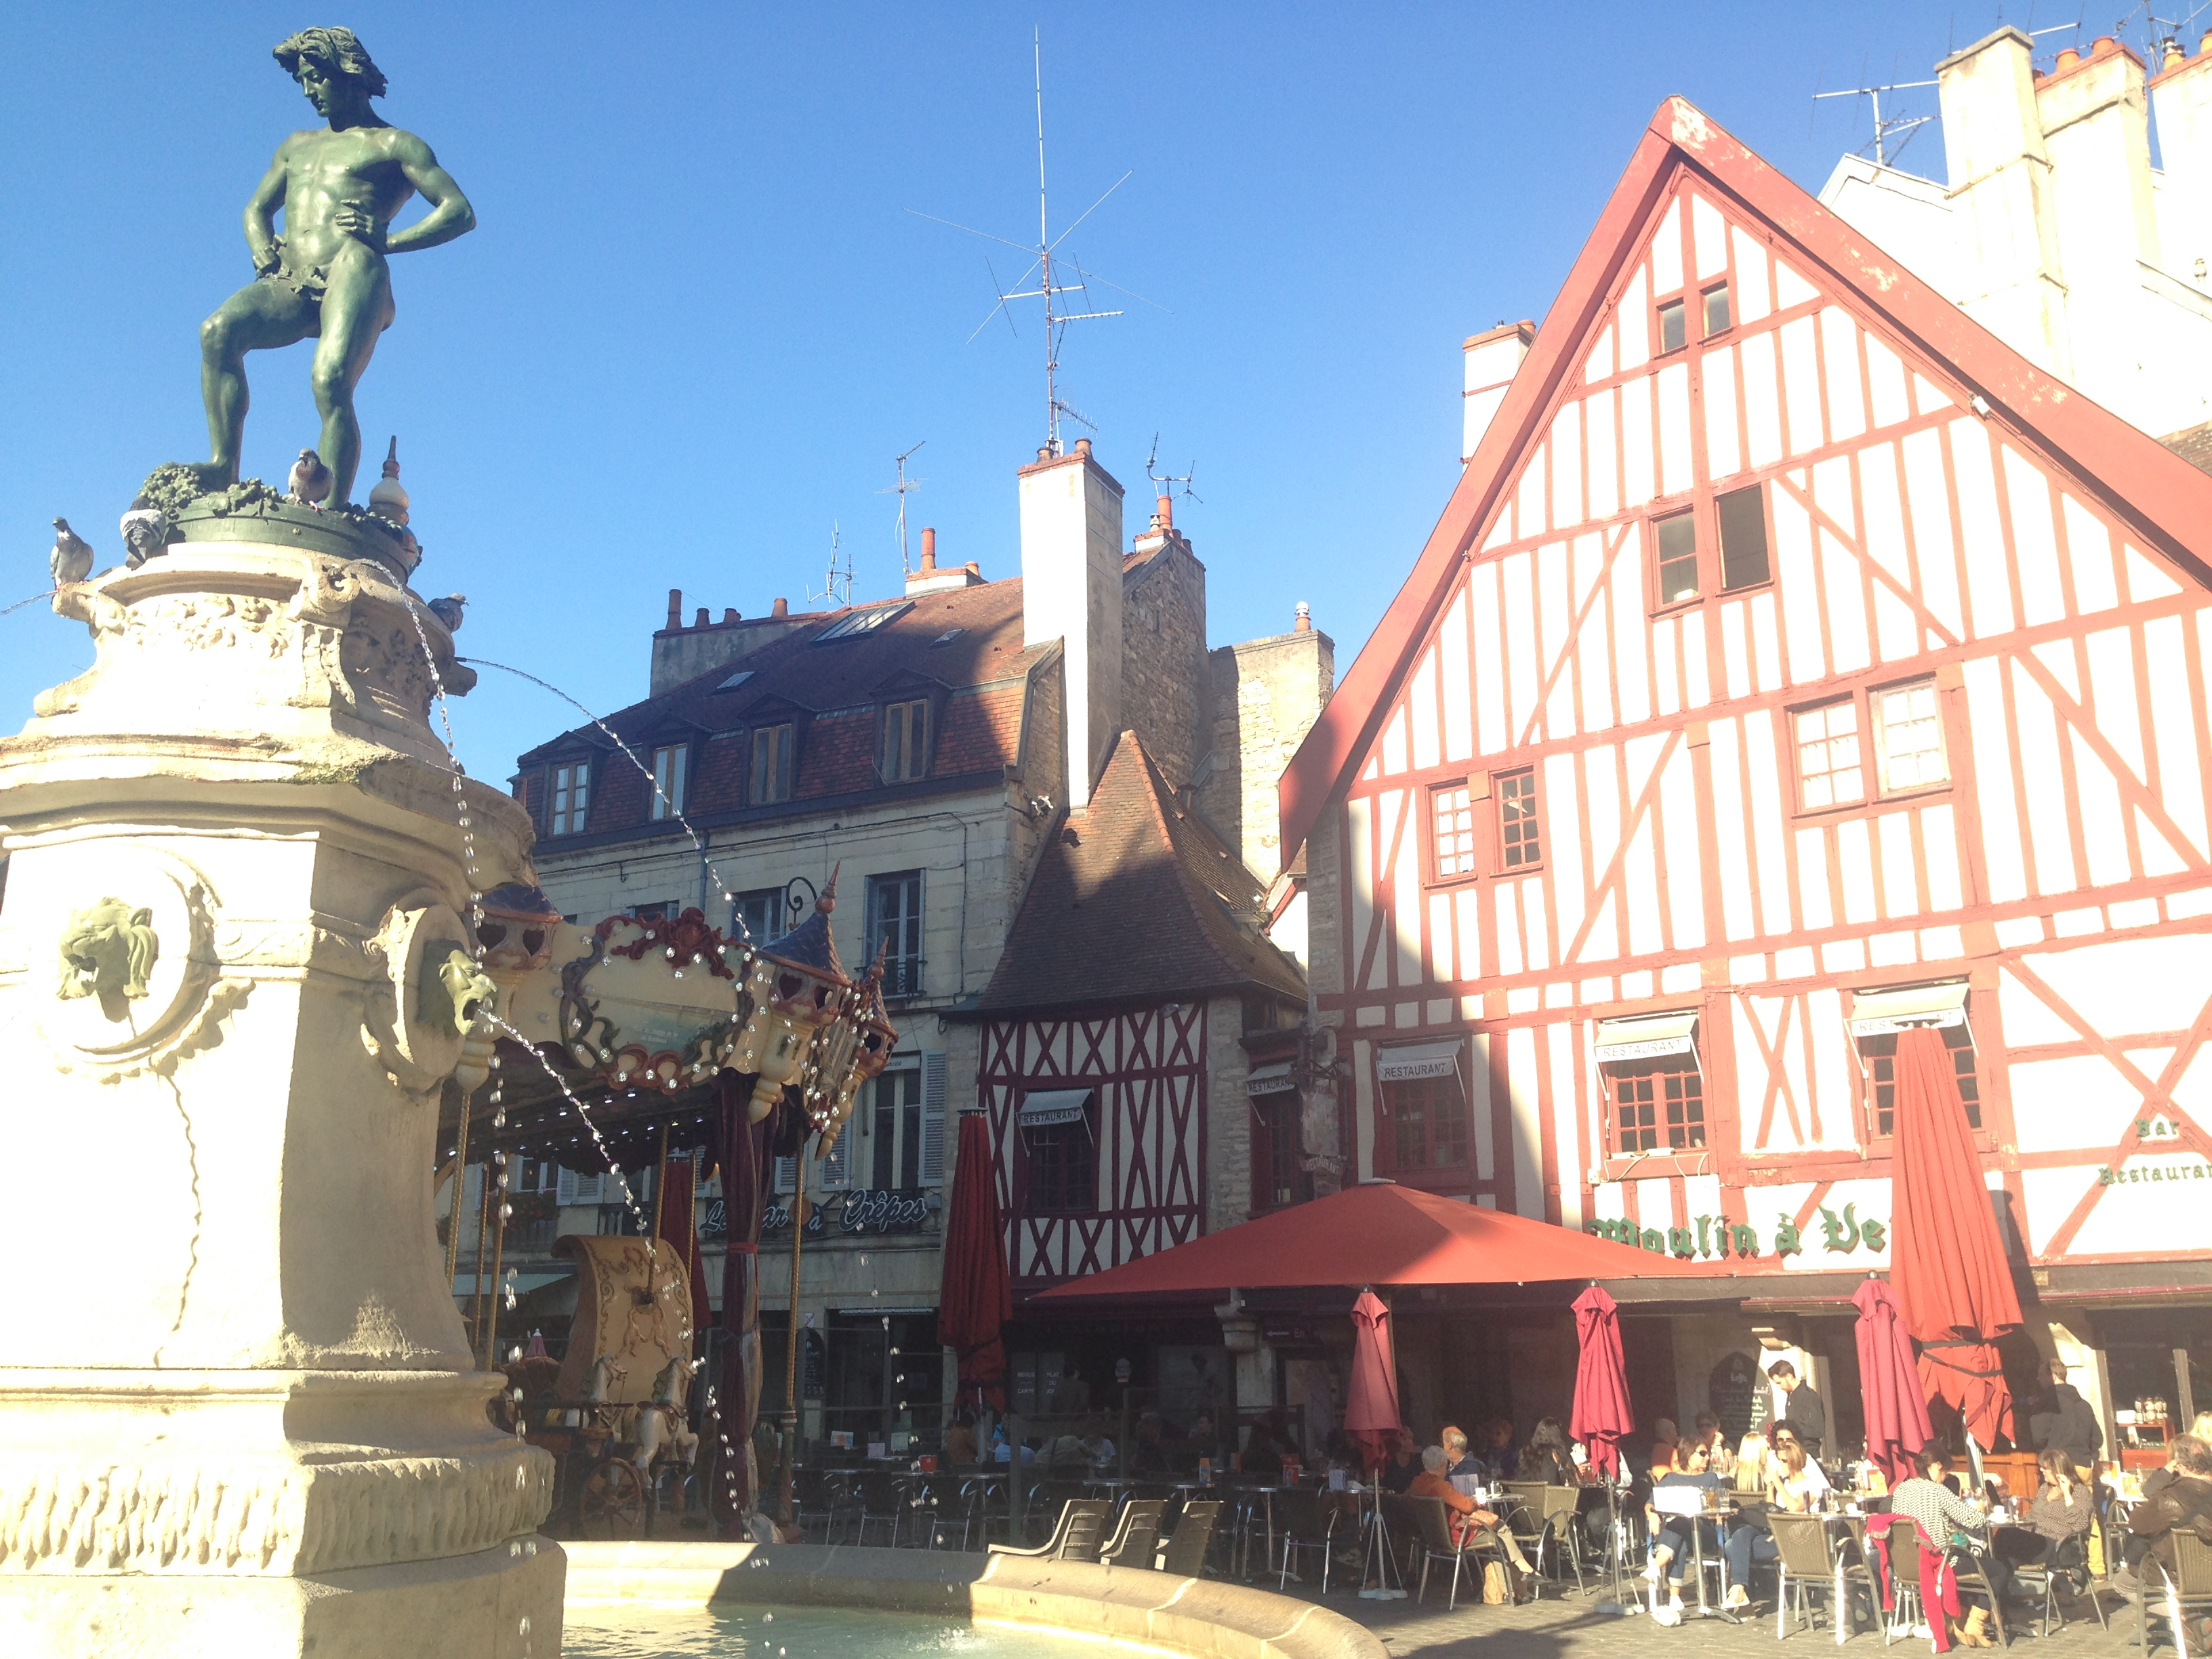 Place François Rude in the historical center of Dijon, France.